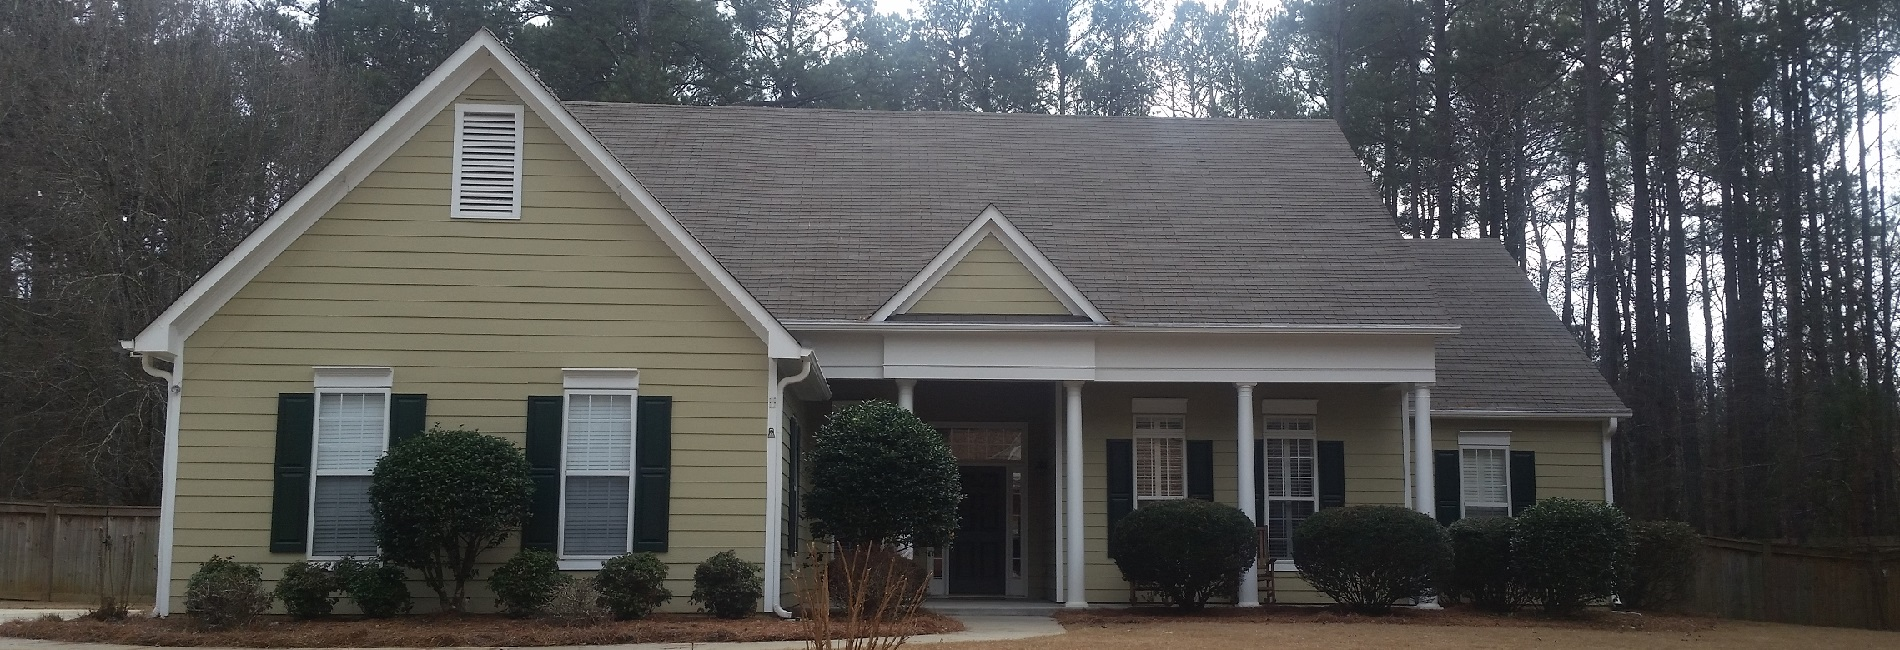 This home received a full makeover with pressure washing, roof cleaning, and house washing.